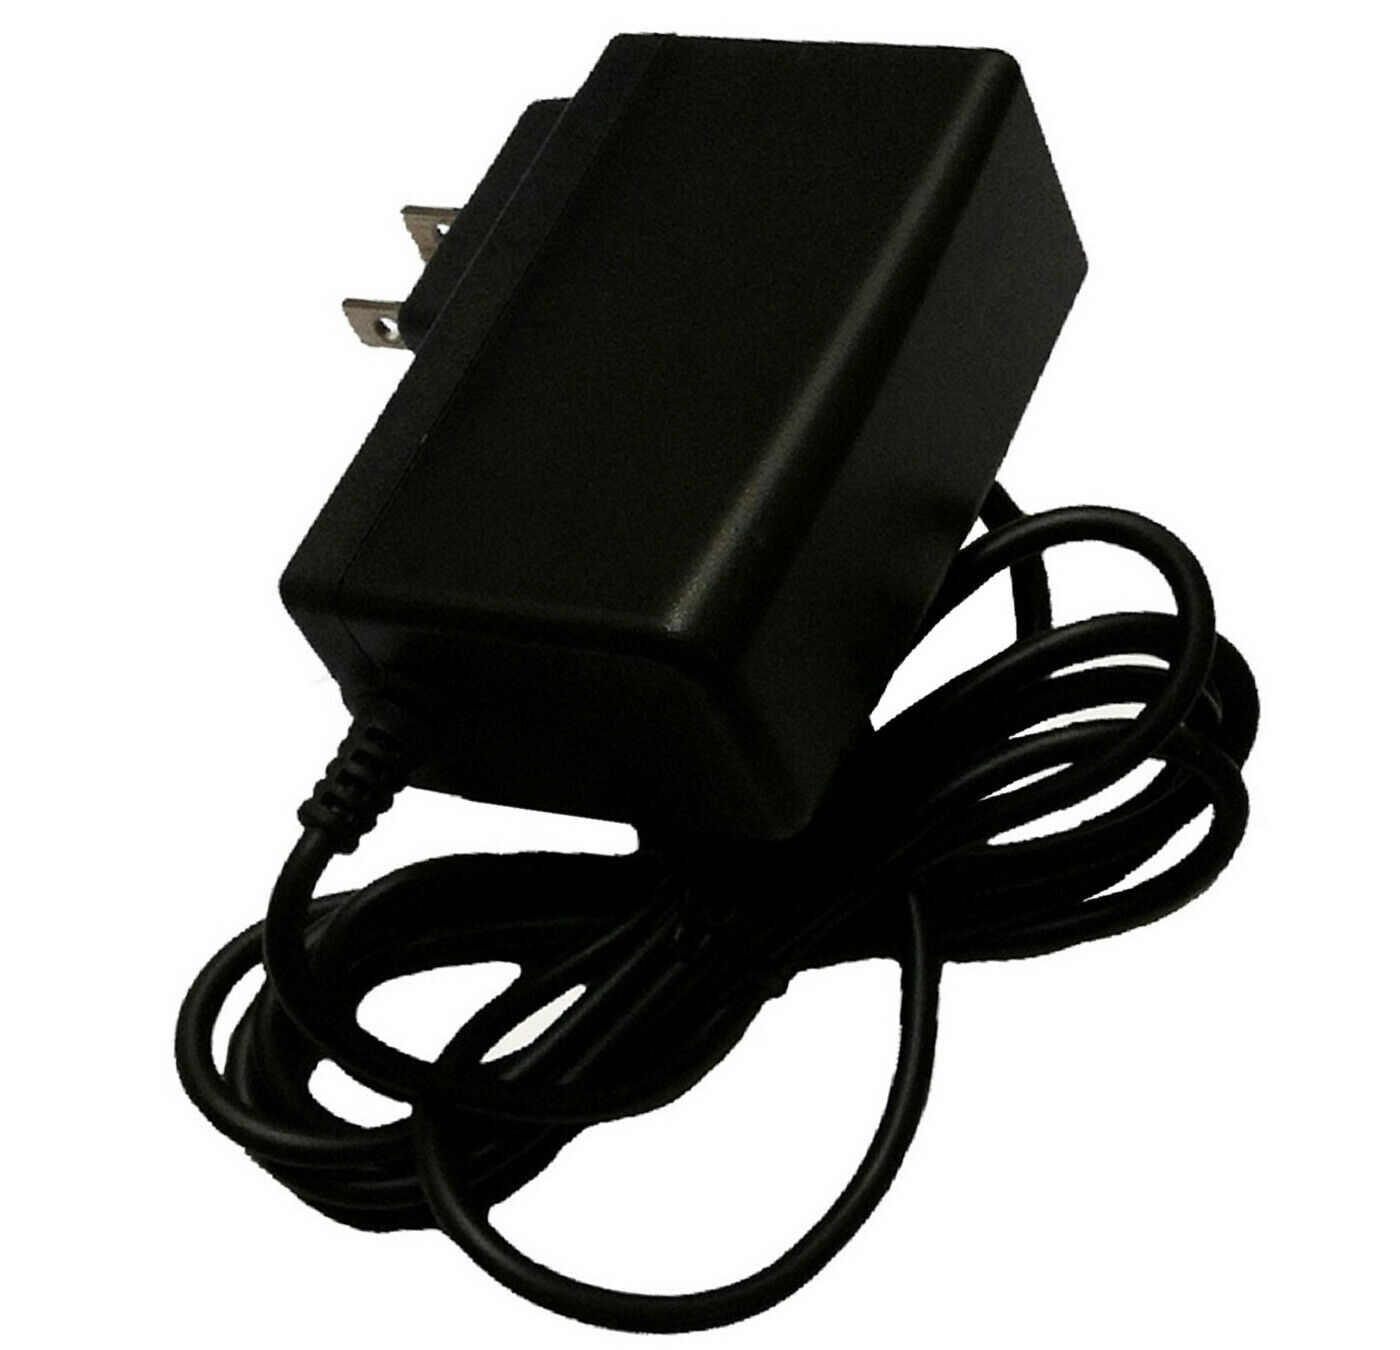 6V AC Adapter For Ozeri Wine Opener YLS0041A-T060008 OW02A OW07A DC Power Supply